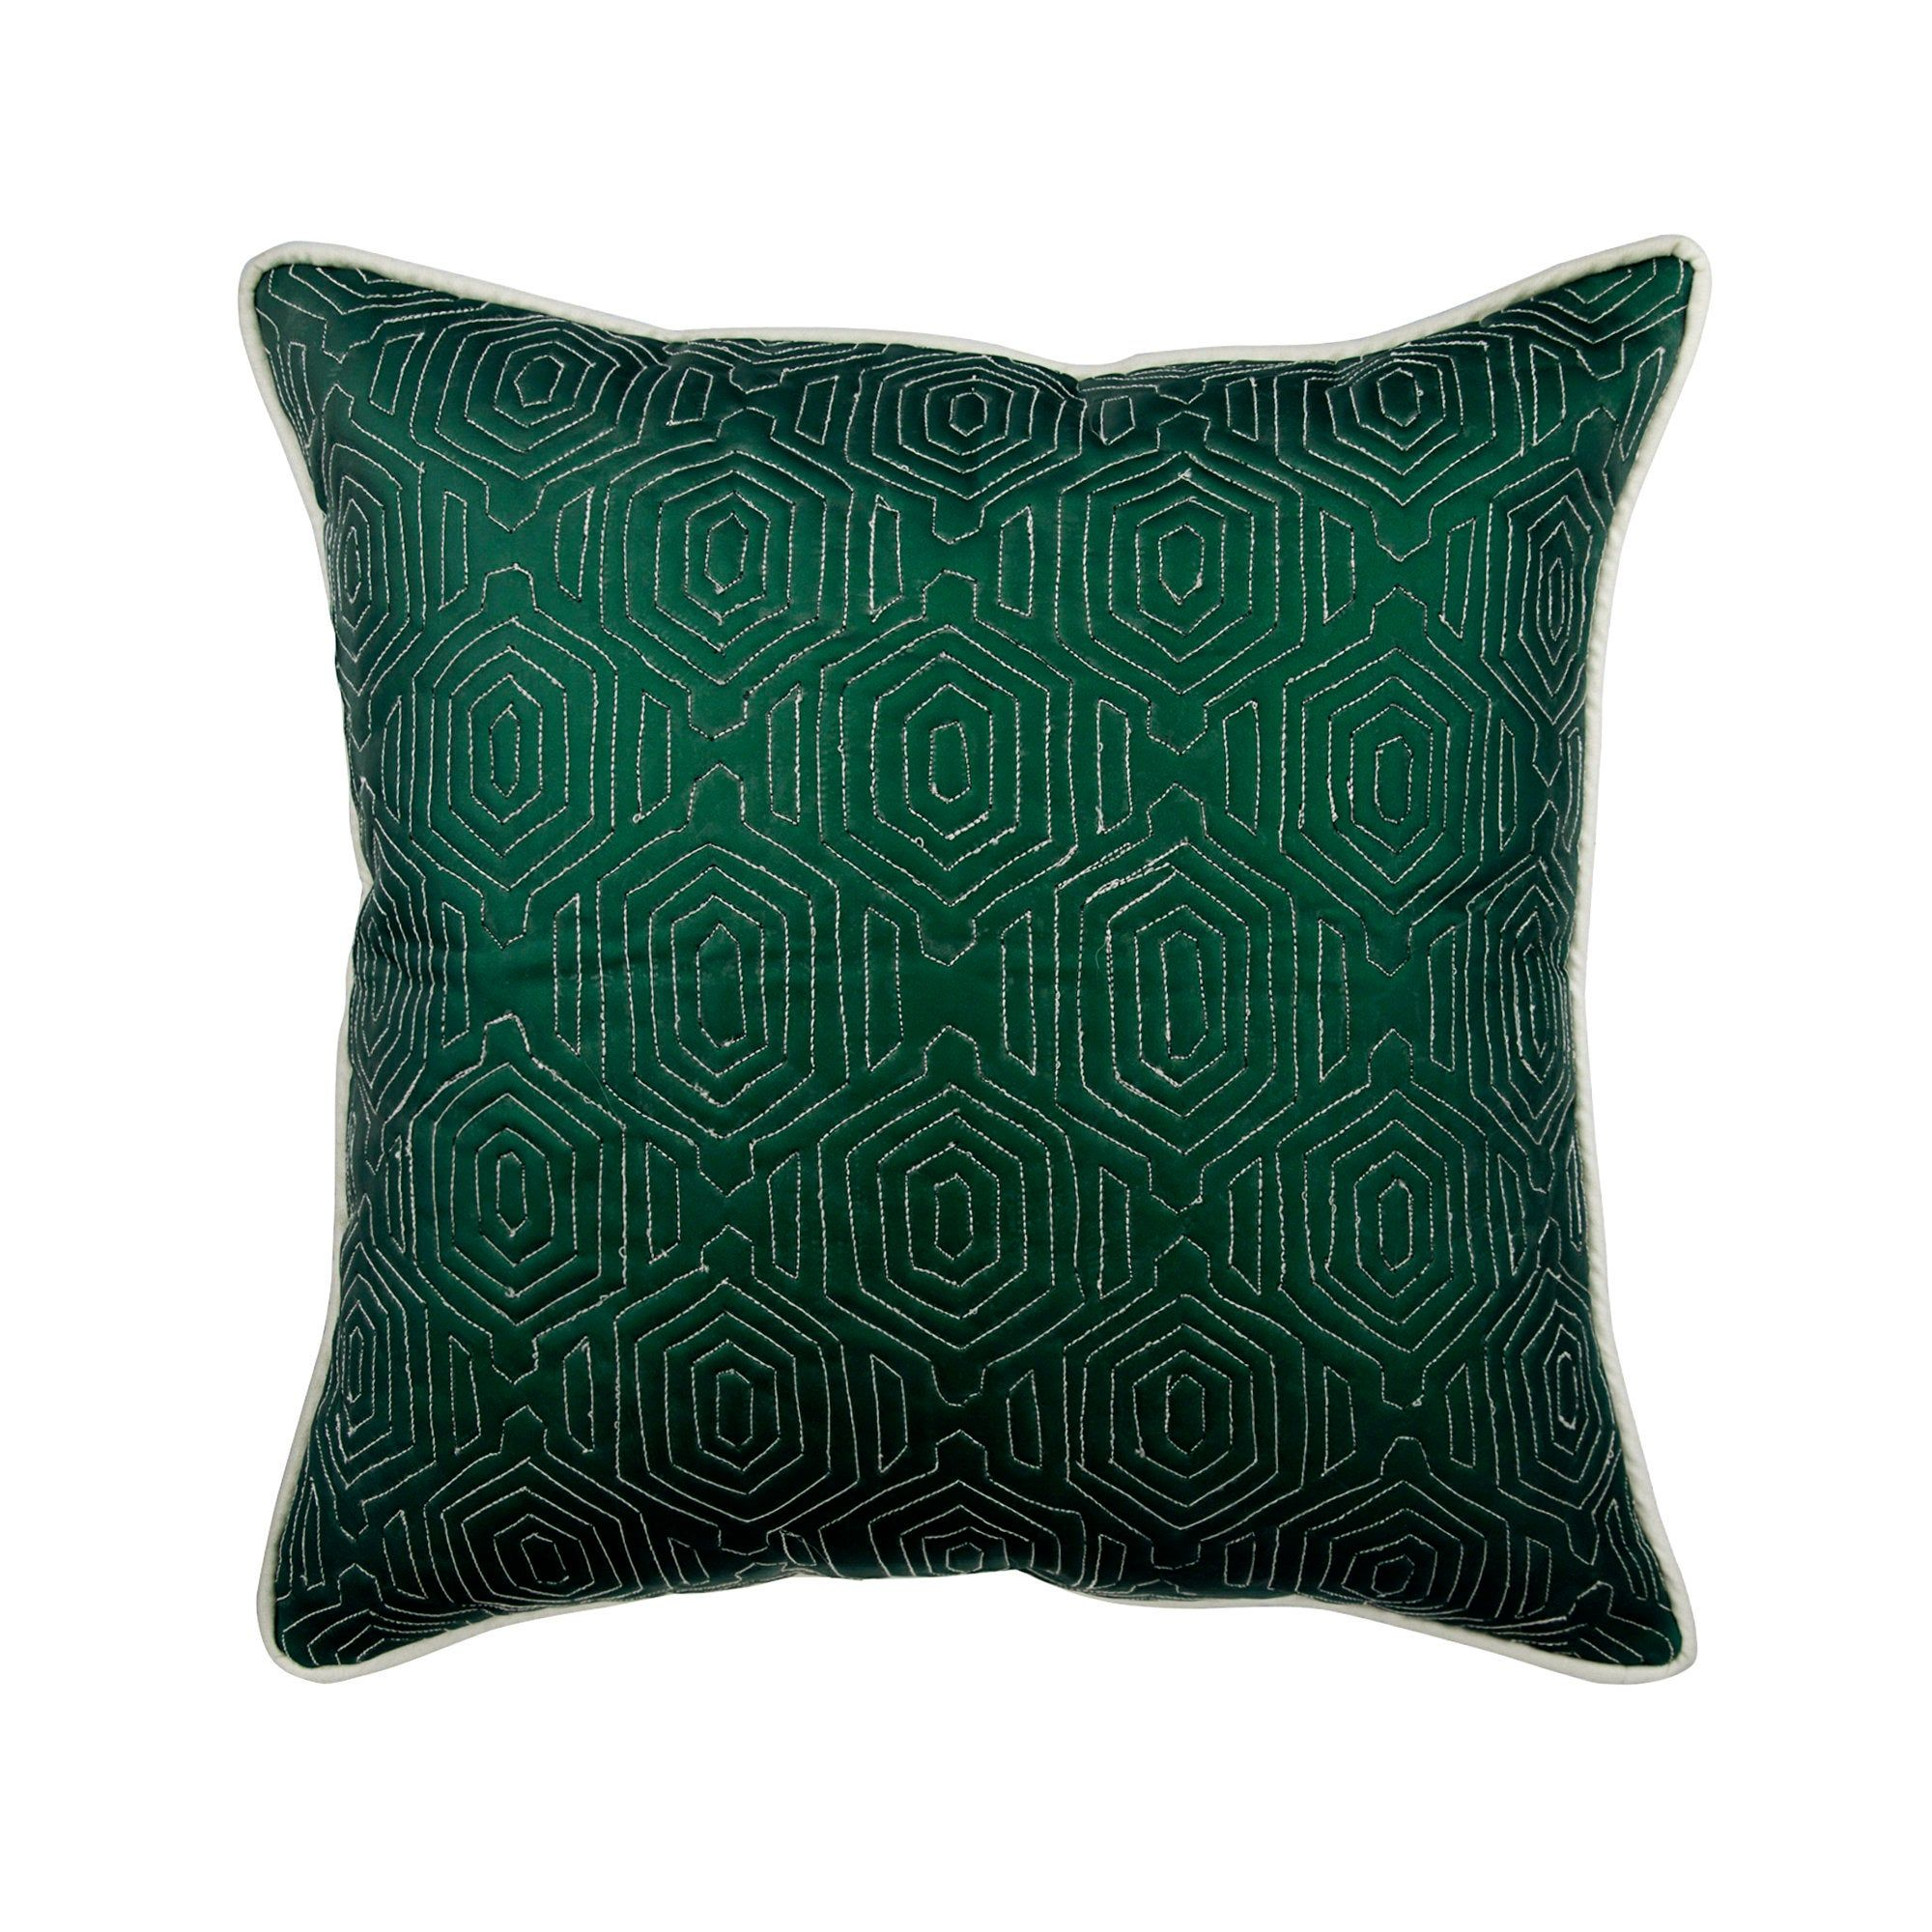 Leather Suede Green Couch Throw 16 X16 Designer Cushion Cover Pillow Cover Geometric Pattern Modern Home Decor Pillow Lost Emerald Leather Throw Pillows Geometric Pillow Covers Cushion Cover Designs